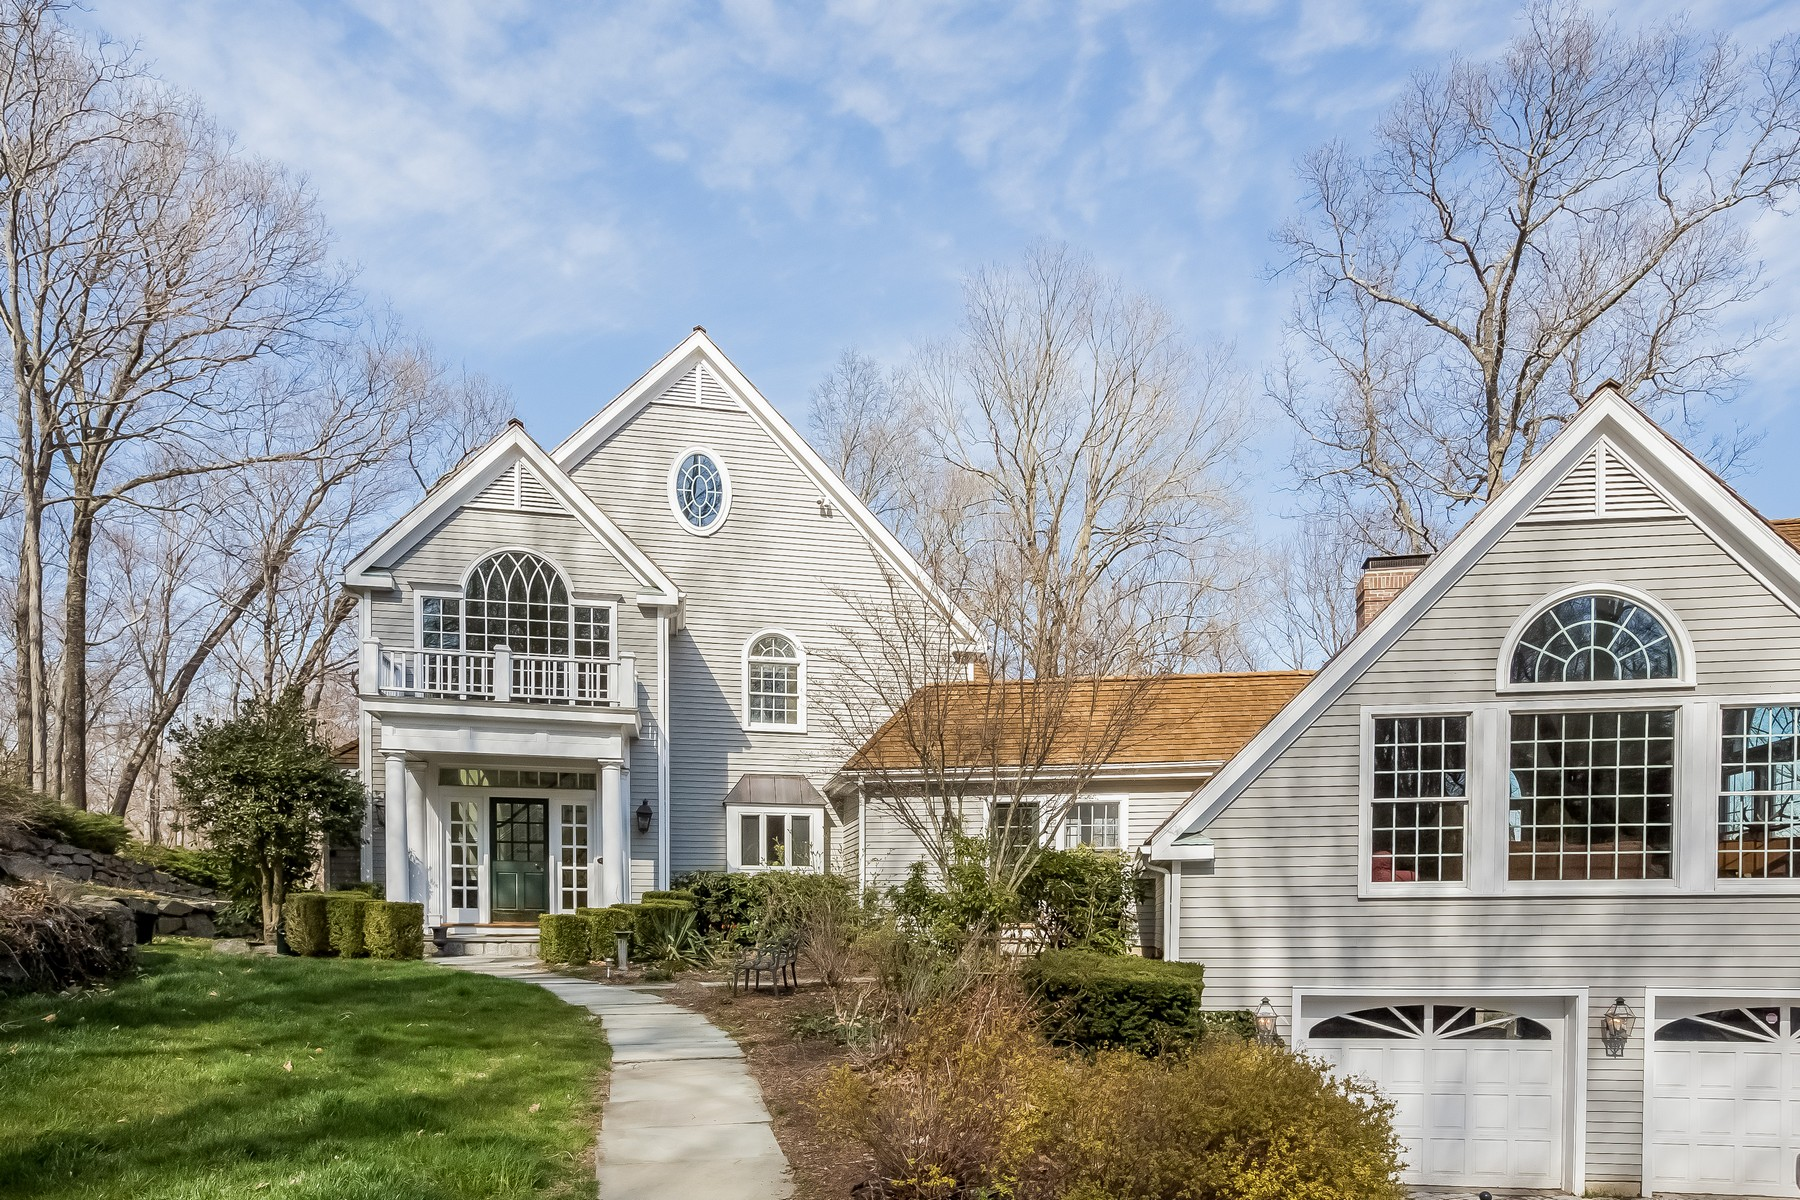 Single Family Home for Sale at Intriguing Colonial with Reservoir Views 222 Nod Hill Road Wilton, Connecticut, 06897 United States